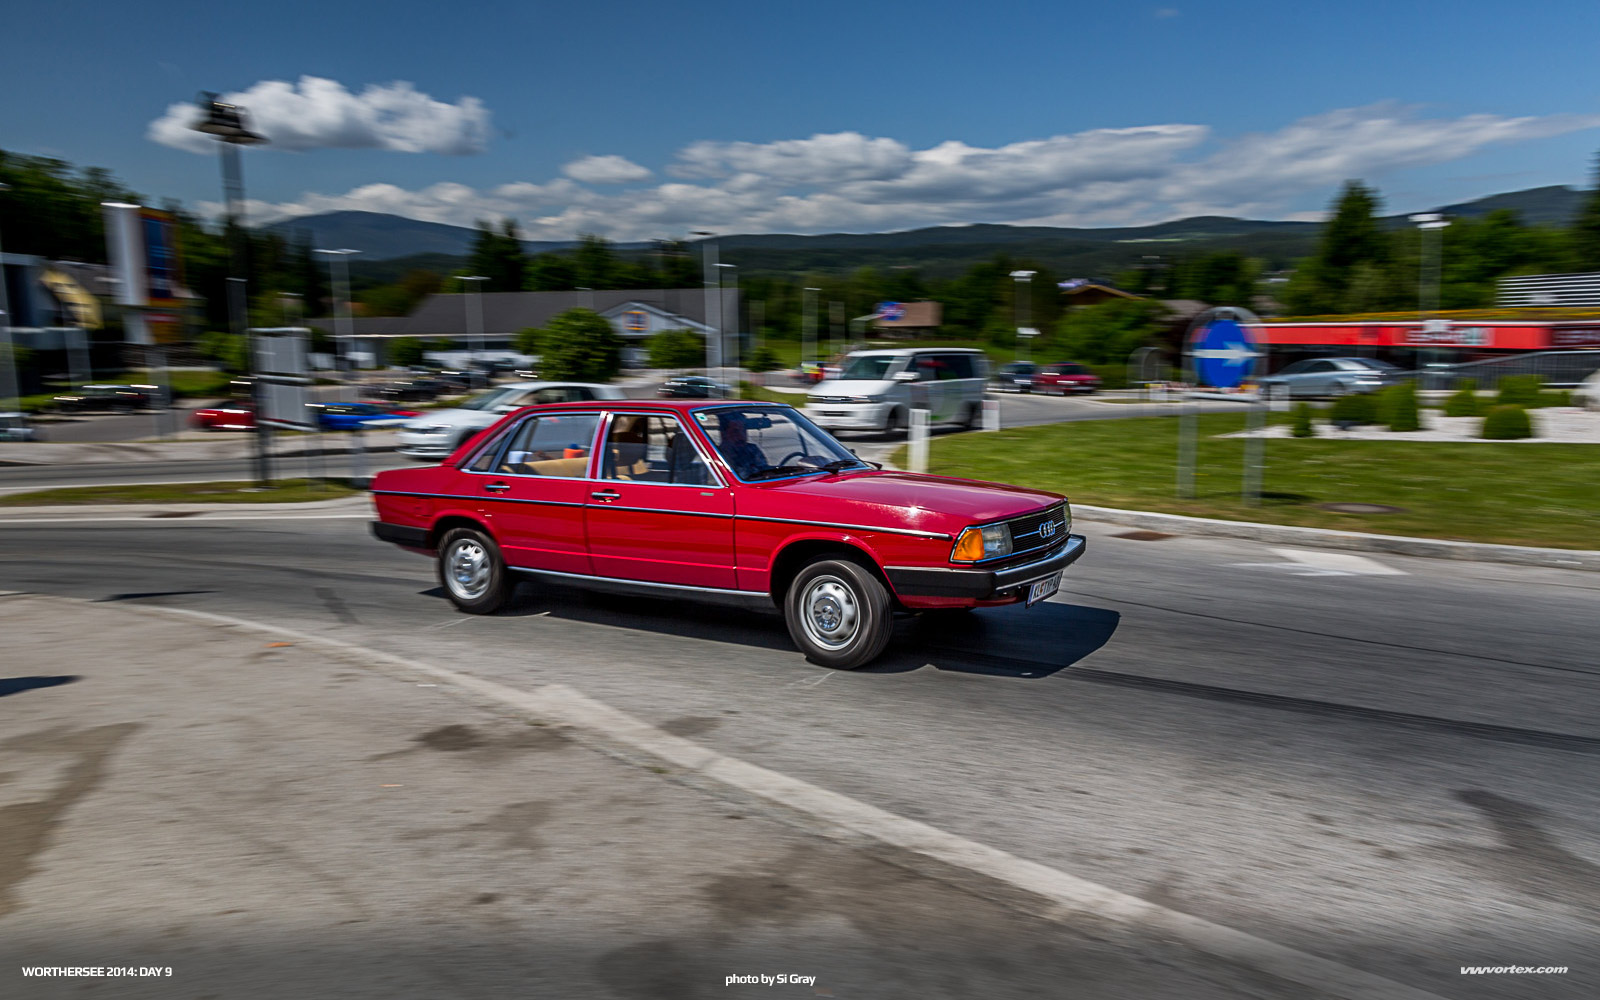 2014-Worthersee-Day-9-Si-Gray-367